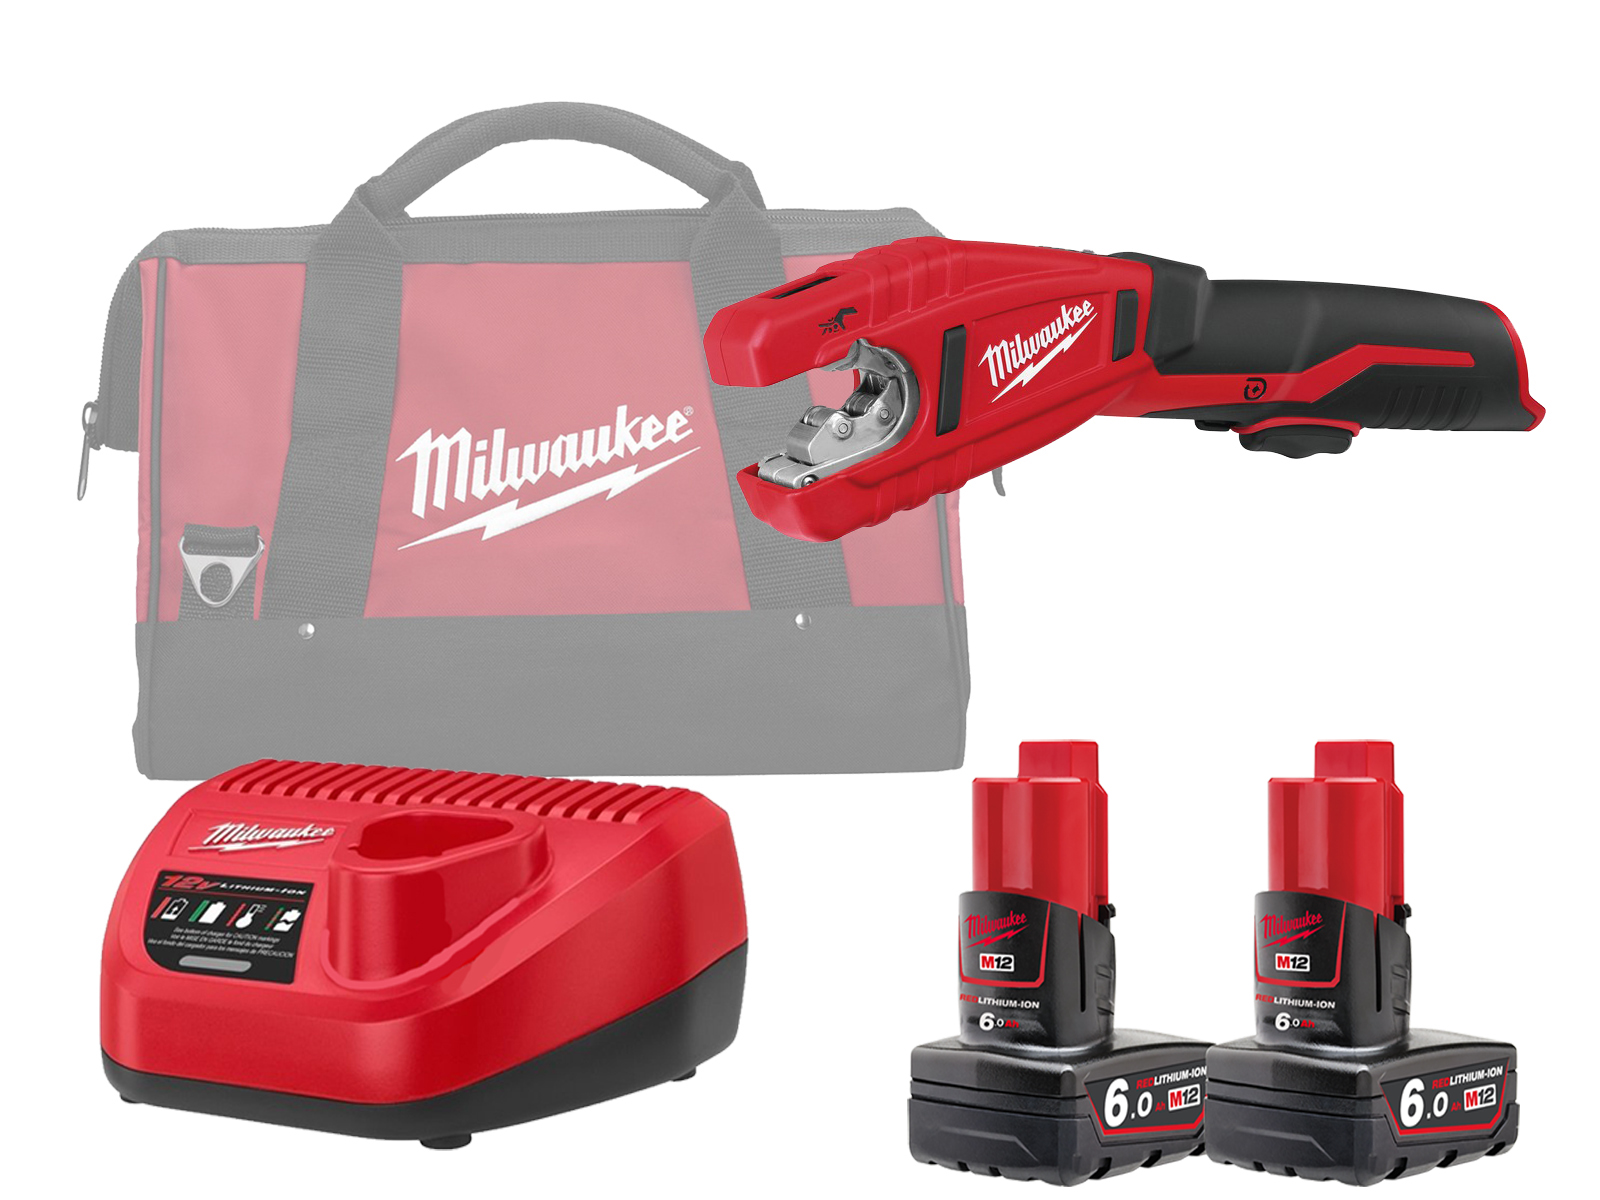 Milwaukee C12PC 12V Sub Compact Copper Pipe Cutter 12mm - 28mm - 6.0ah Pack